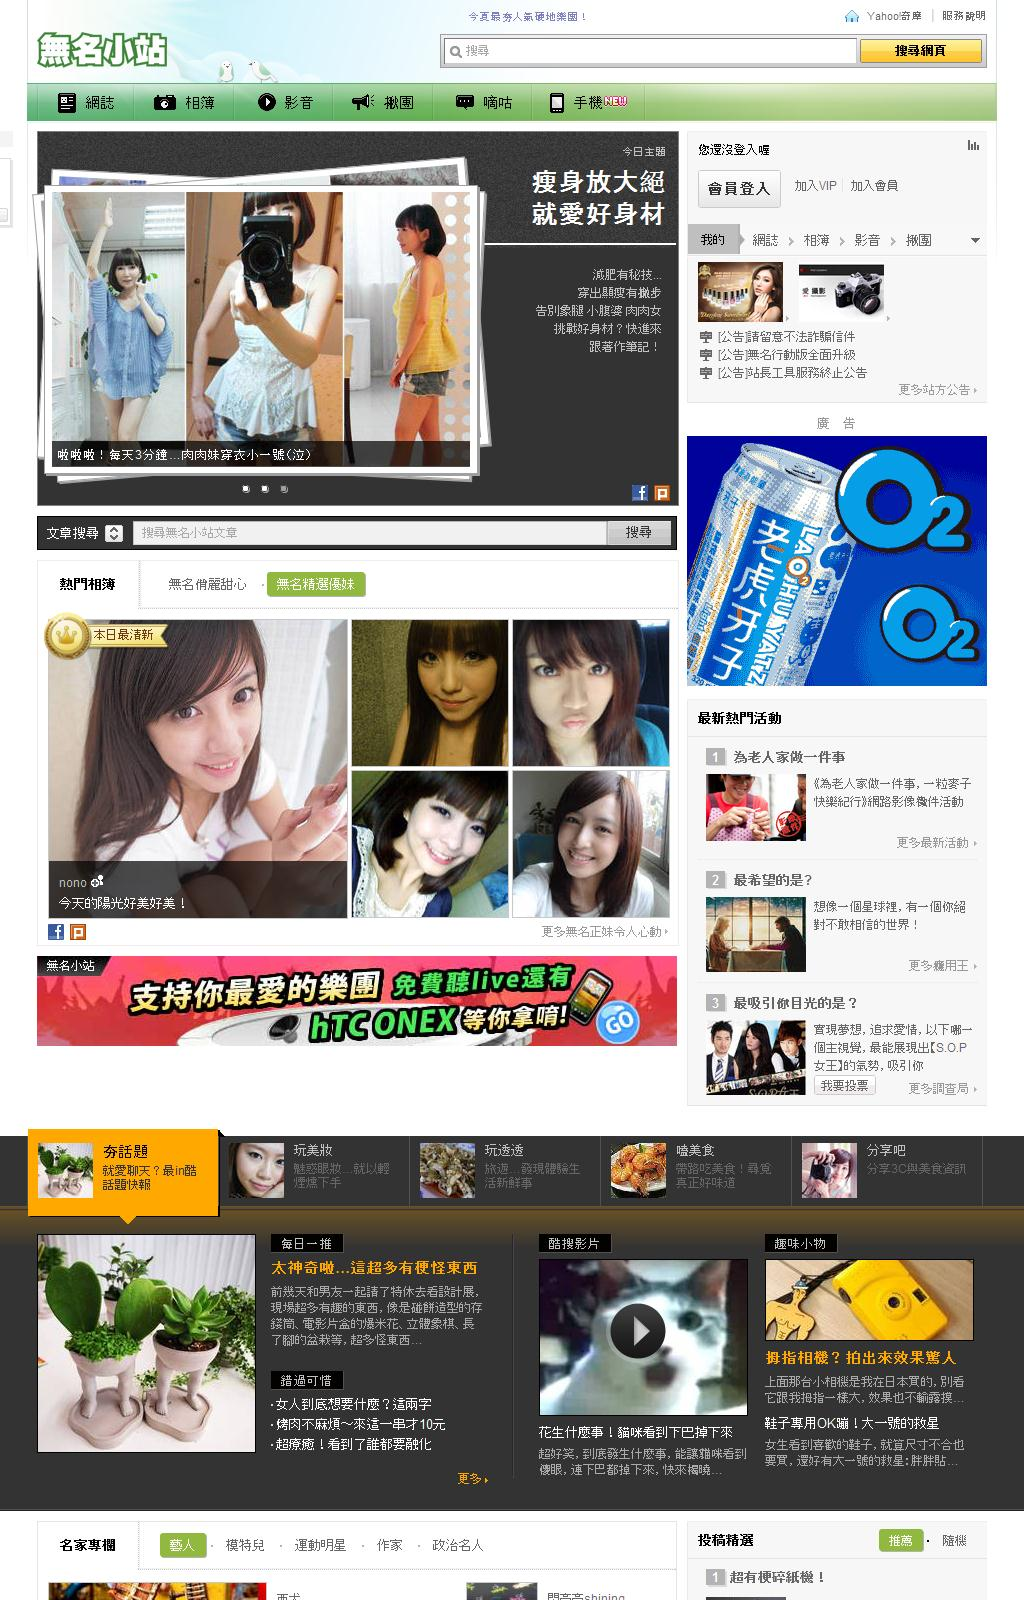 Wretch.cc - the most popular blog and album service in Taiwan